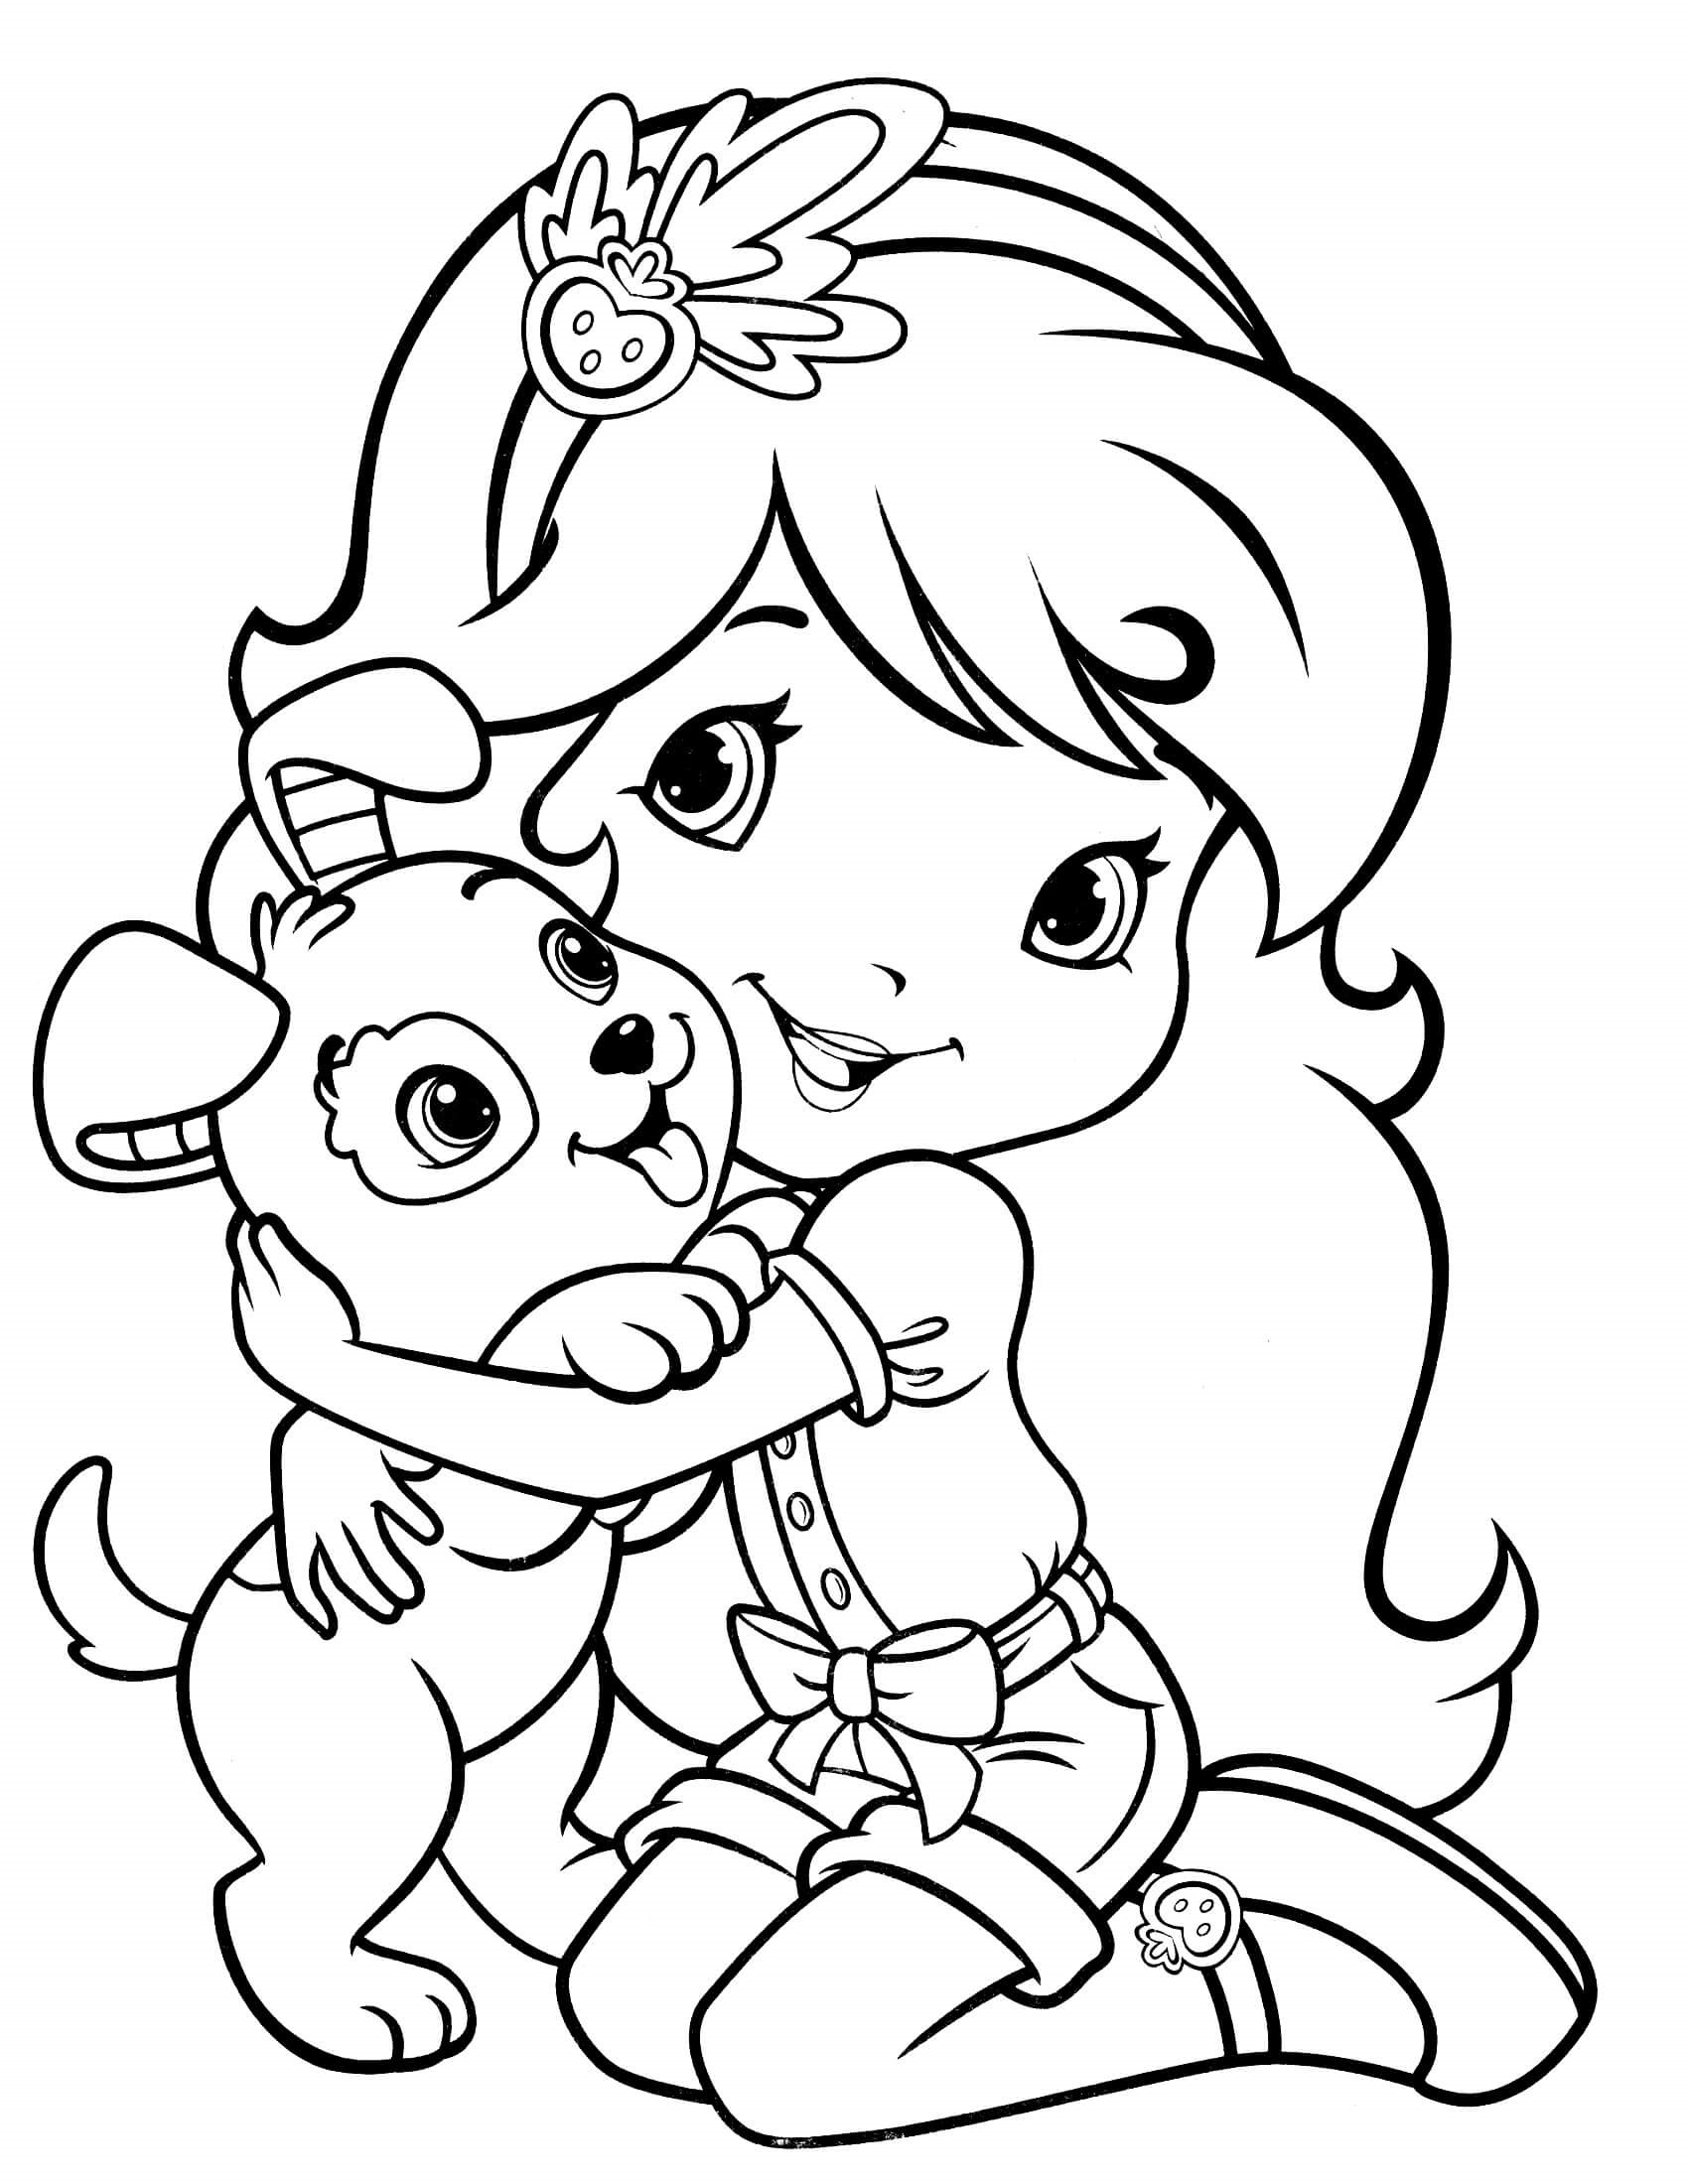 Strawberry Shortcake Coloring Pages for Teens